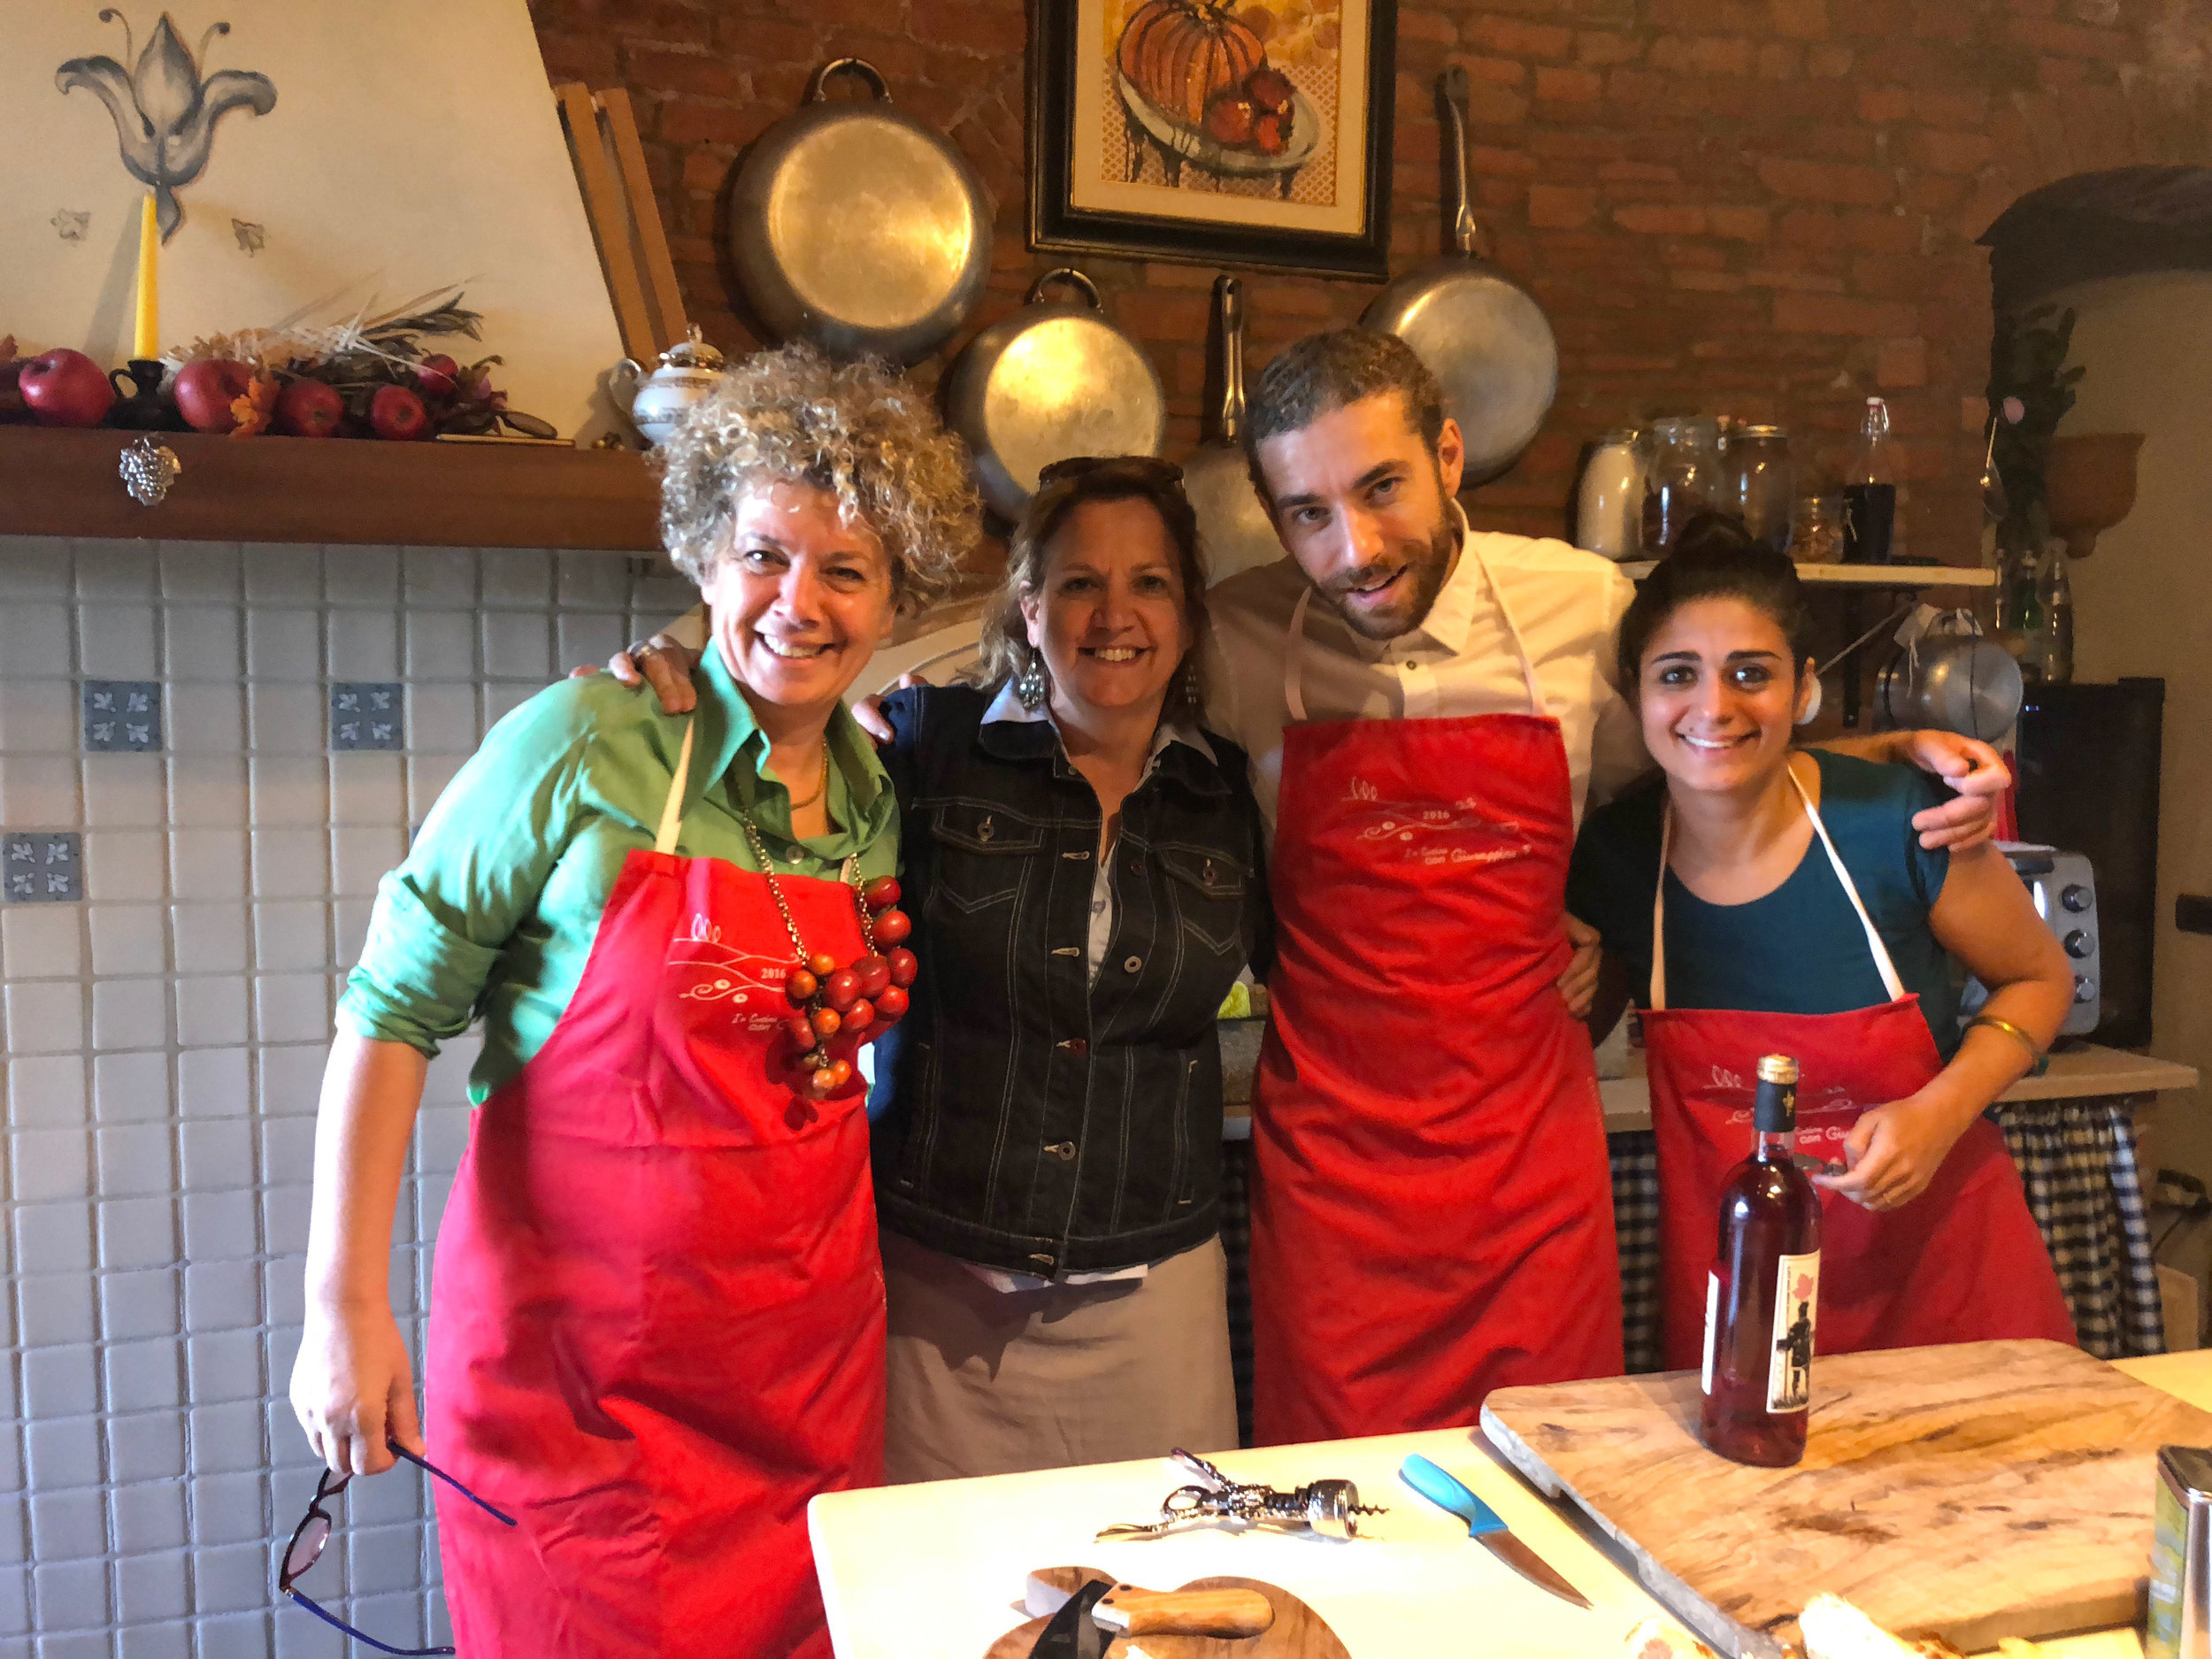 me, giuseppina, luca & antonella, giuseppina's cooking school, certaldo. A DAY WITH THIS BUNCH IS ALWAYS FUN.